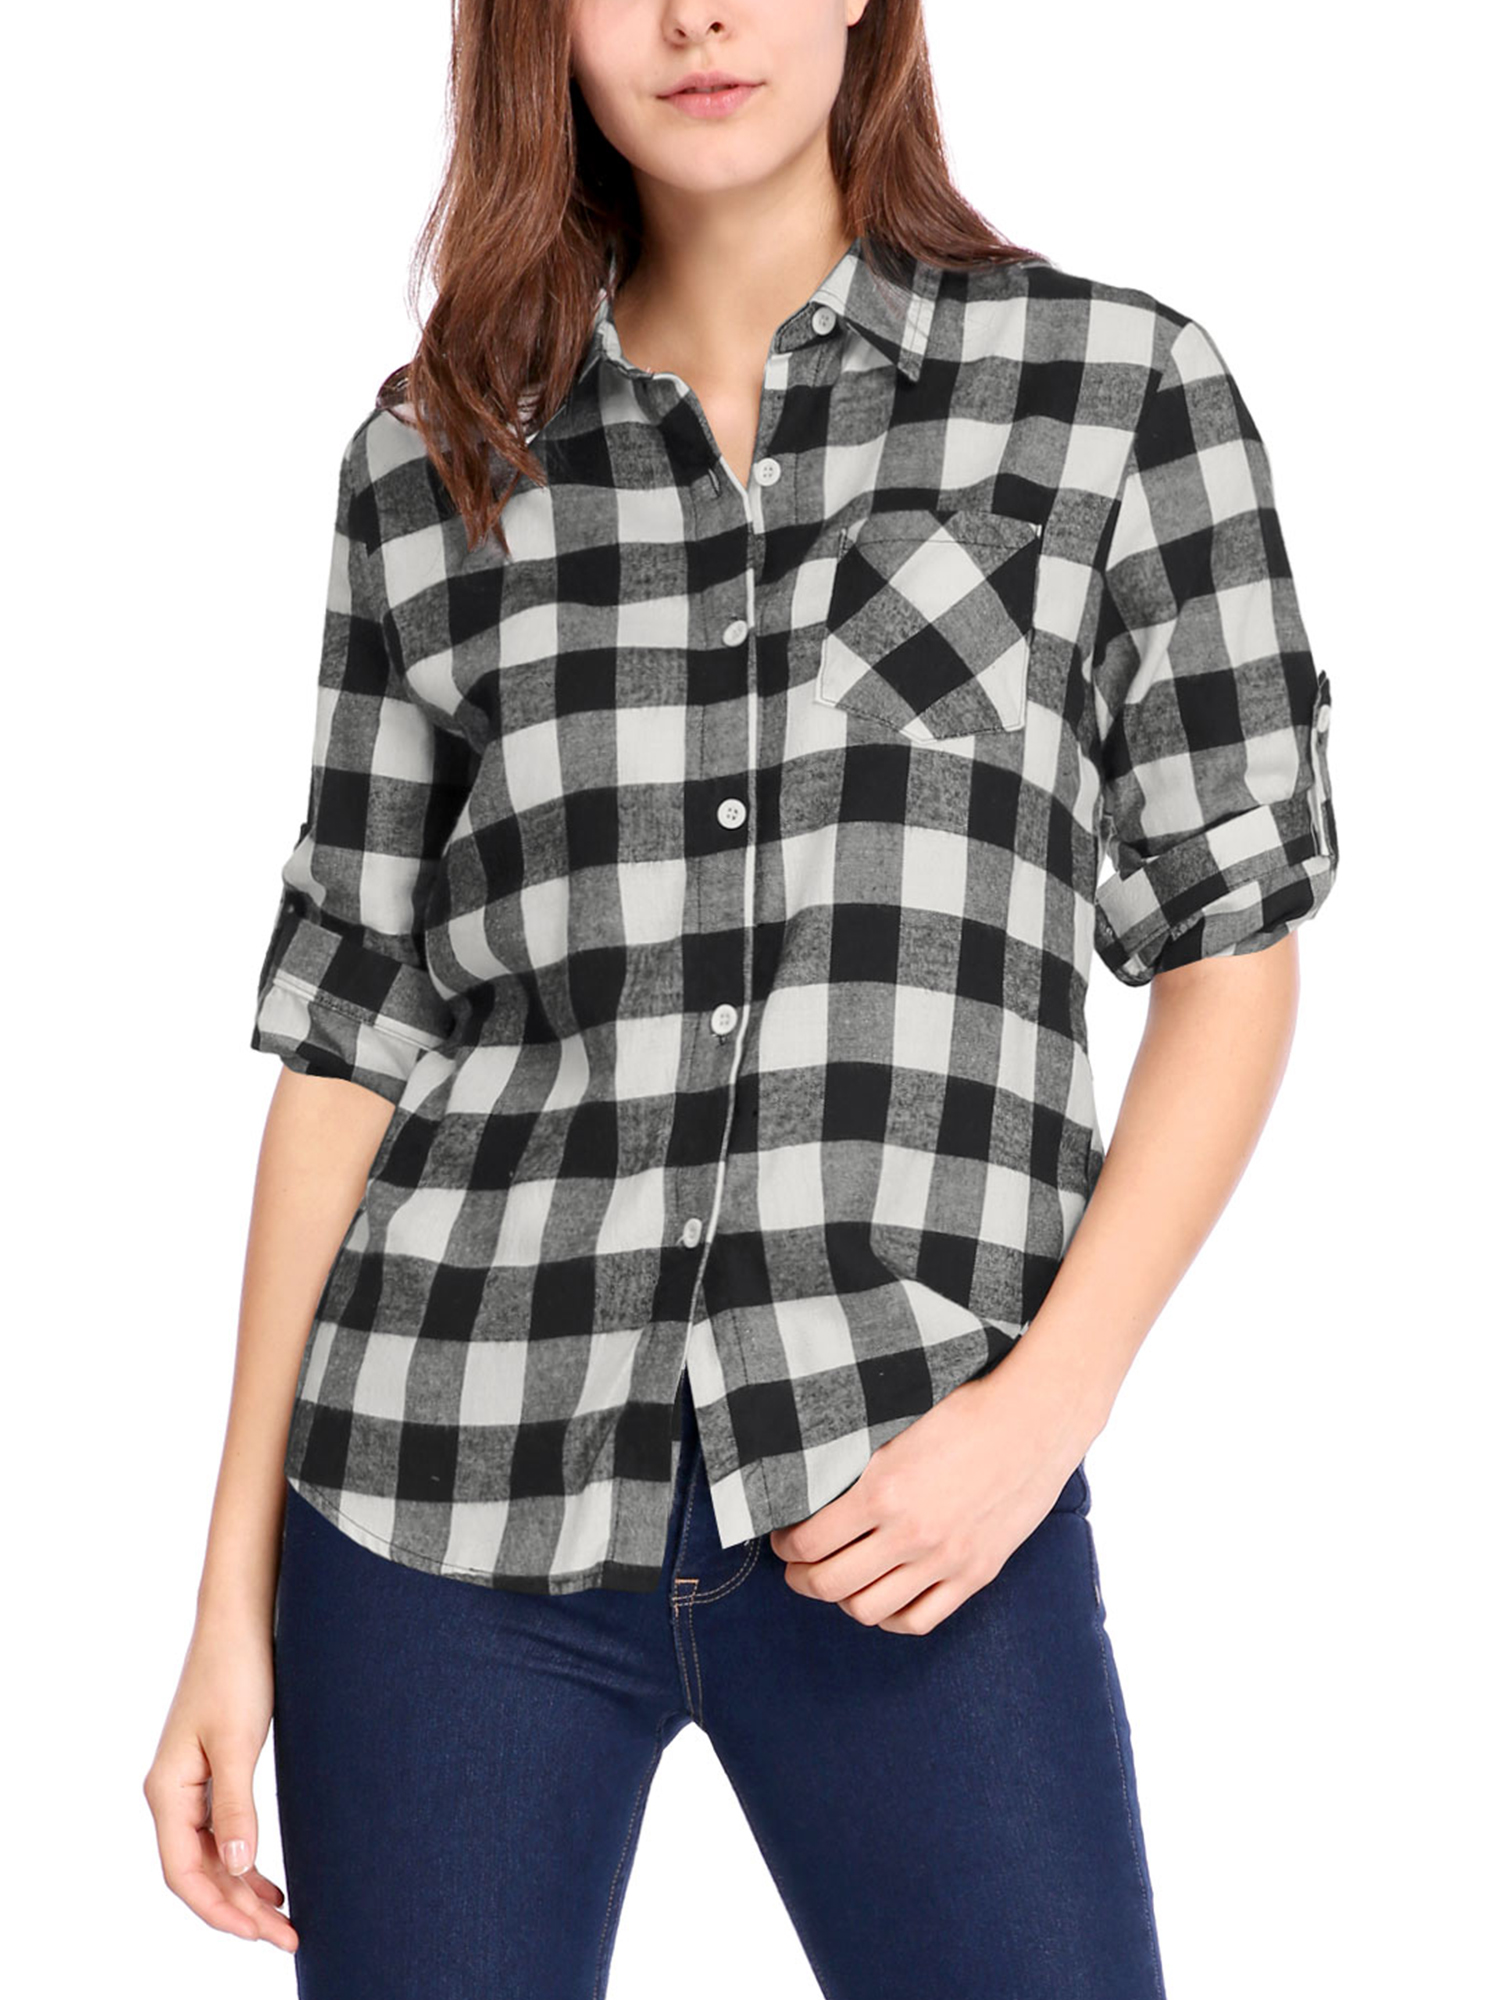 Women Single Breasted Plaids Pattern Pocket Casual Shirt Black White S